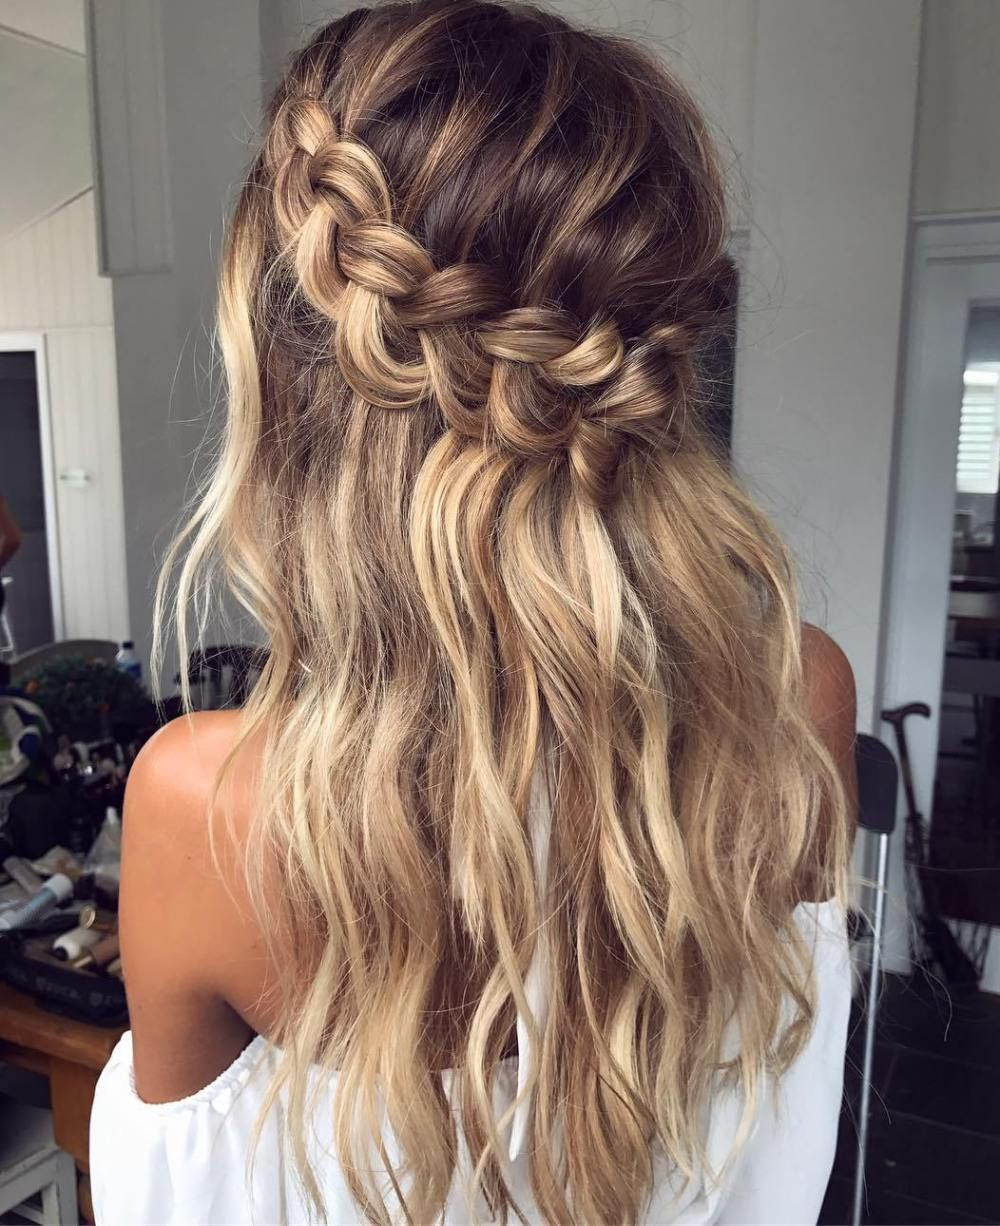 60 Breezy Crown Braid Hairstyles For Summer In 2019 Braid For Long